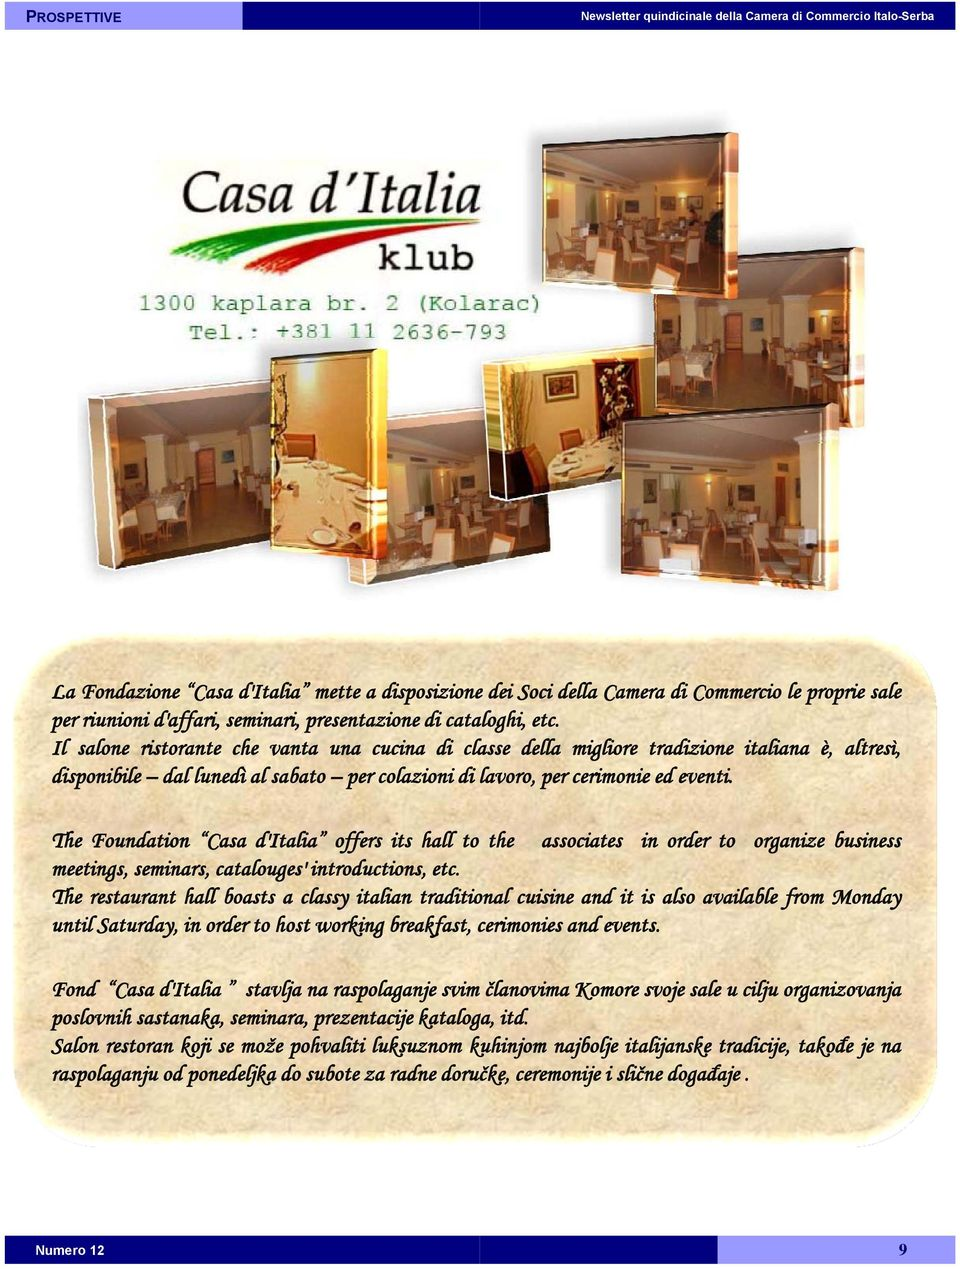 The Foundation Casa d'italia offers its hall to the meetings, seminars, catalouges' introductions, etc.